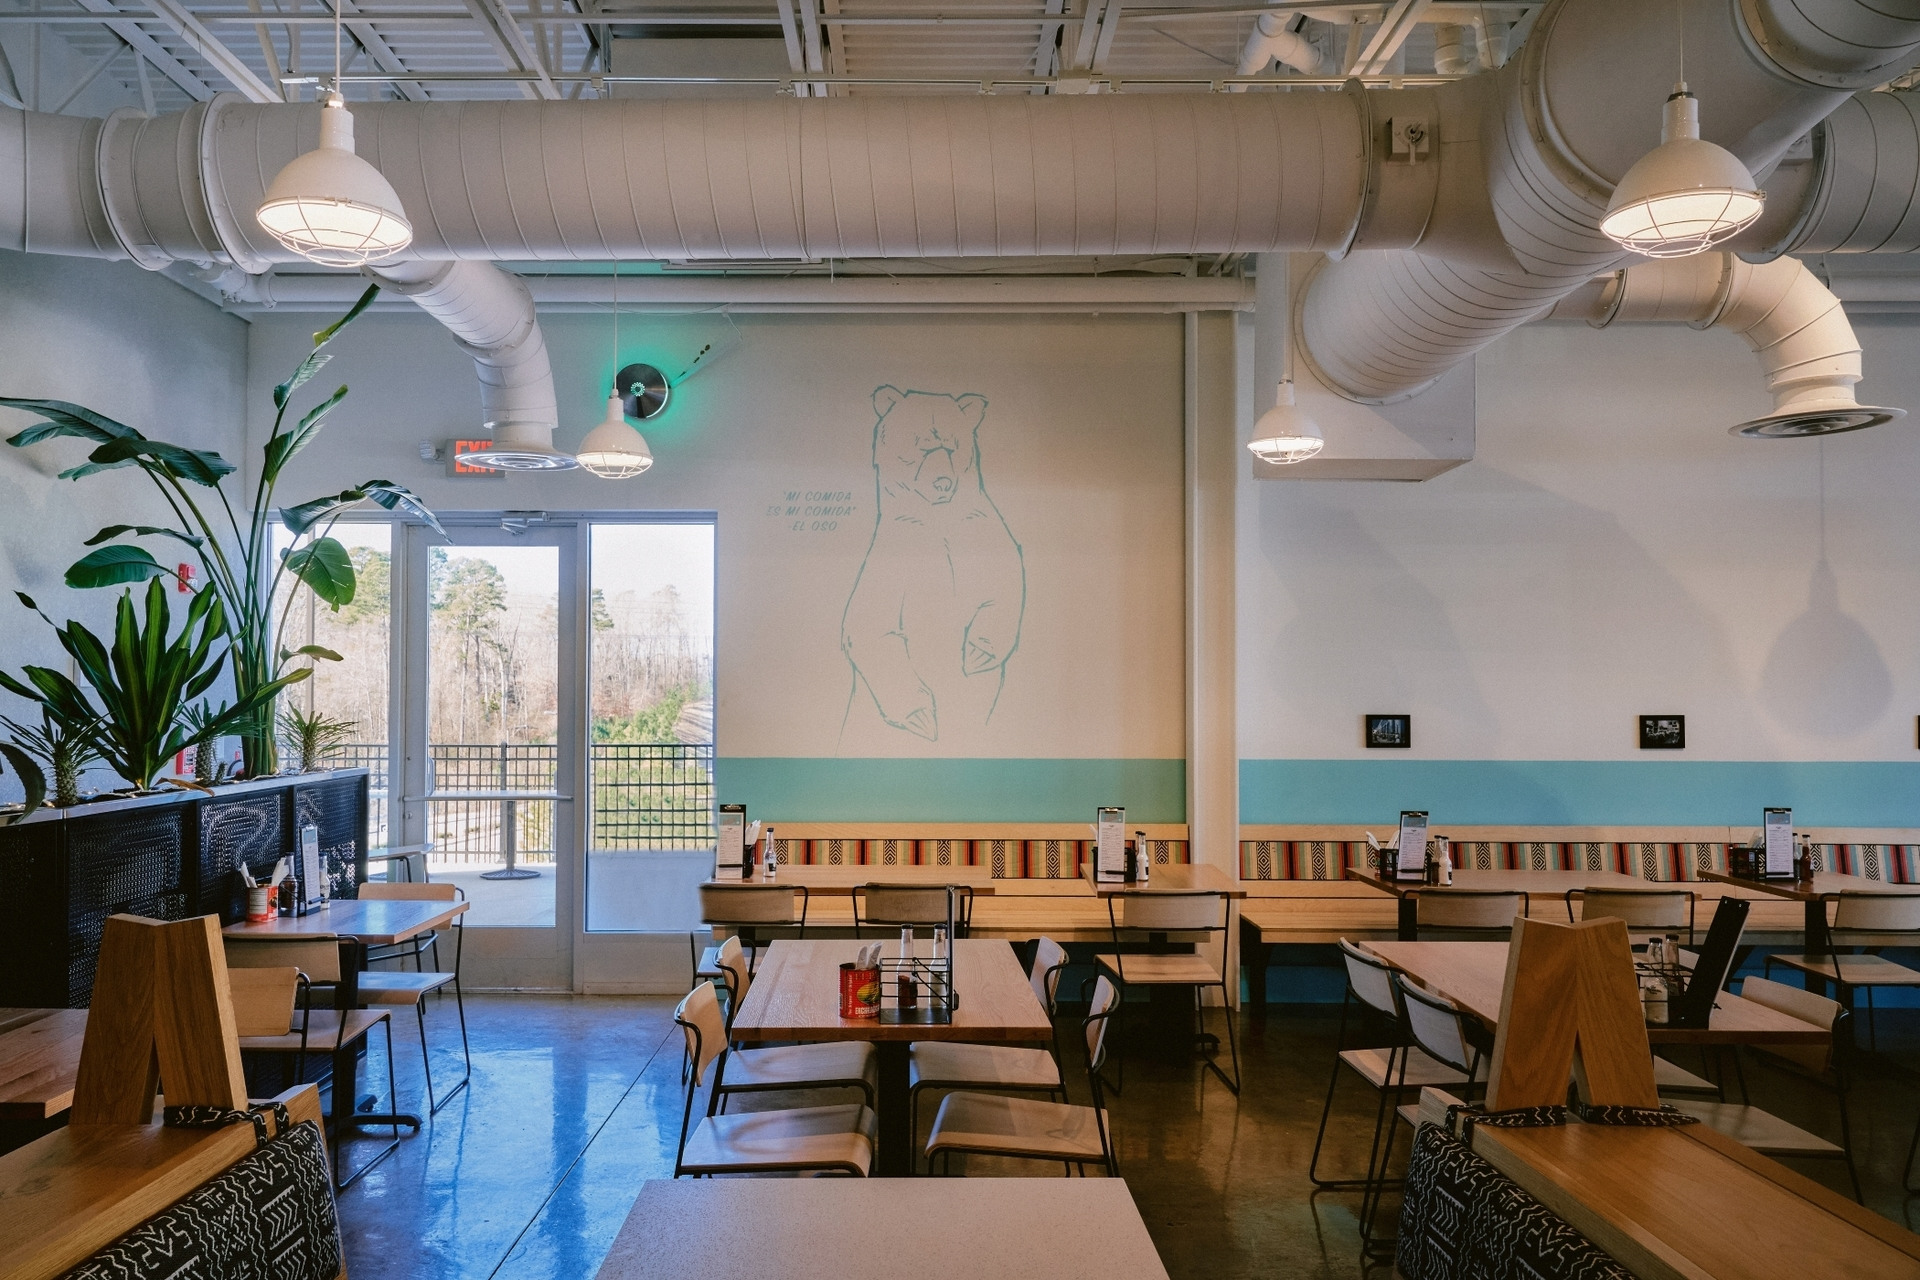 When selecting the lighting for the new space, the designer needed a high-quality product that offered the appropriate scale, style, and price point but was also readily available to meet their timeline for construction.